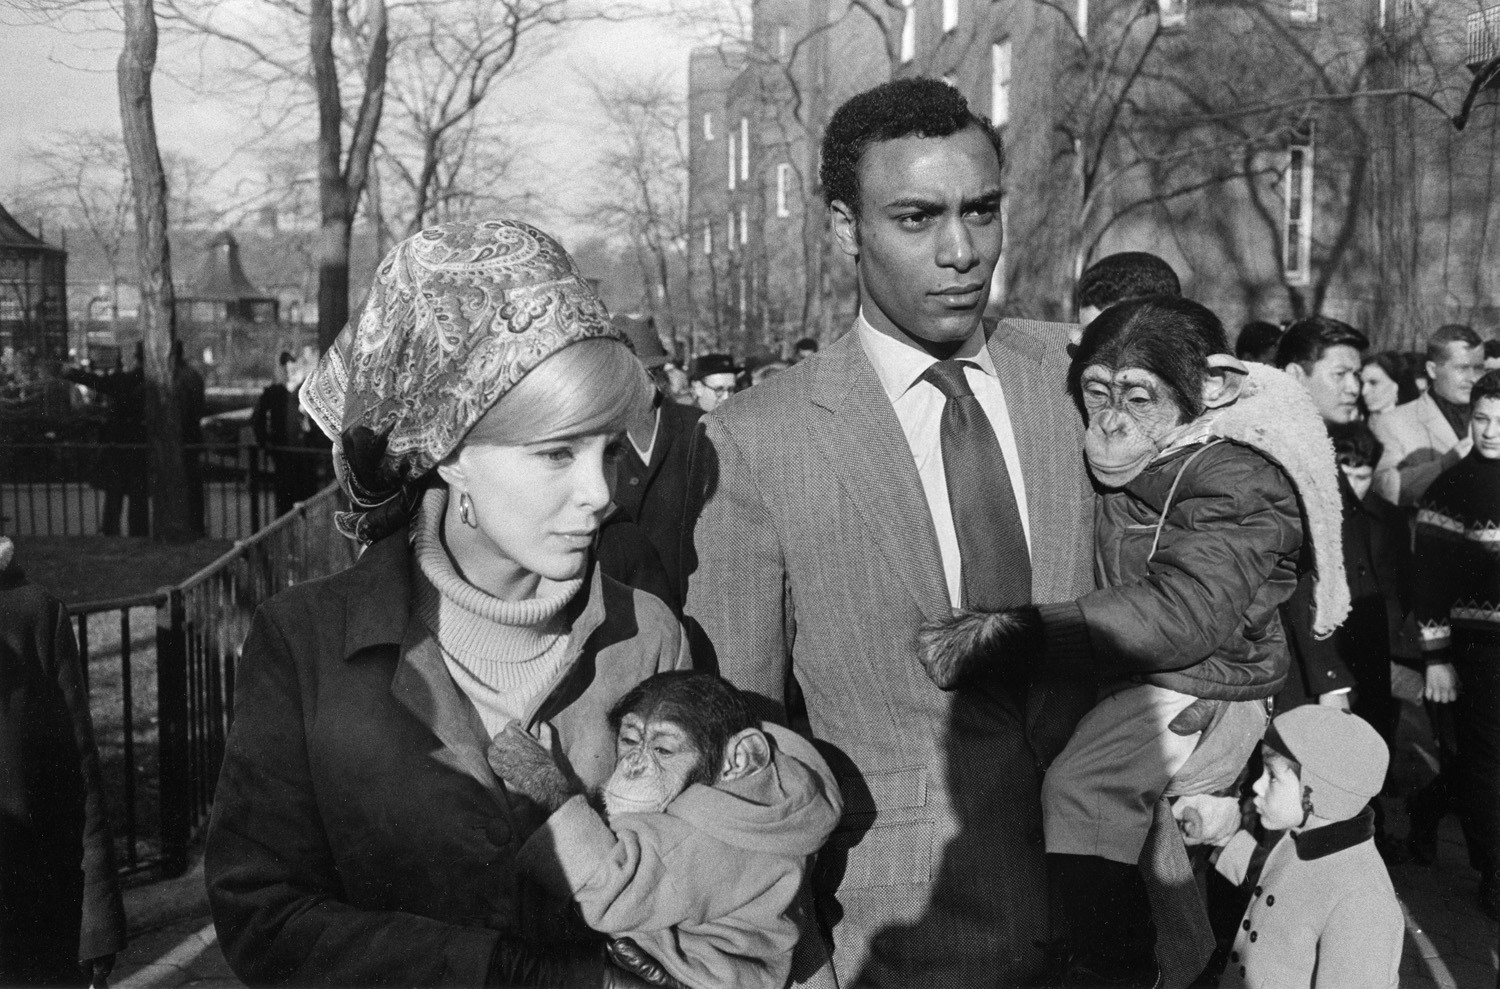 Garry Winogrand, Central Park Zoo, New York City, New York, 1967